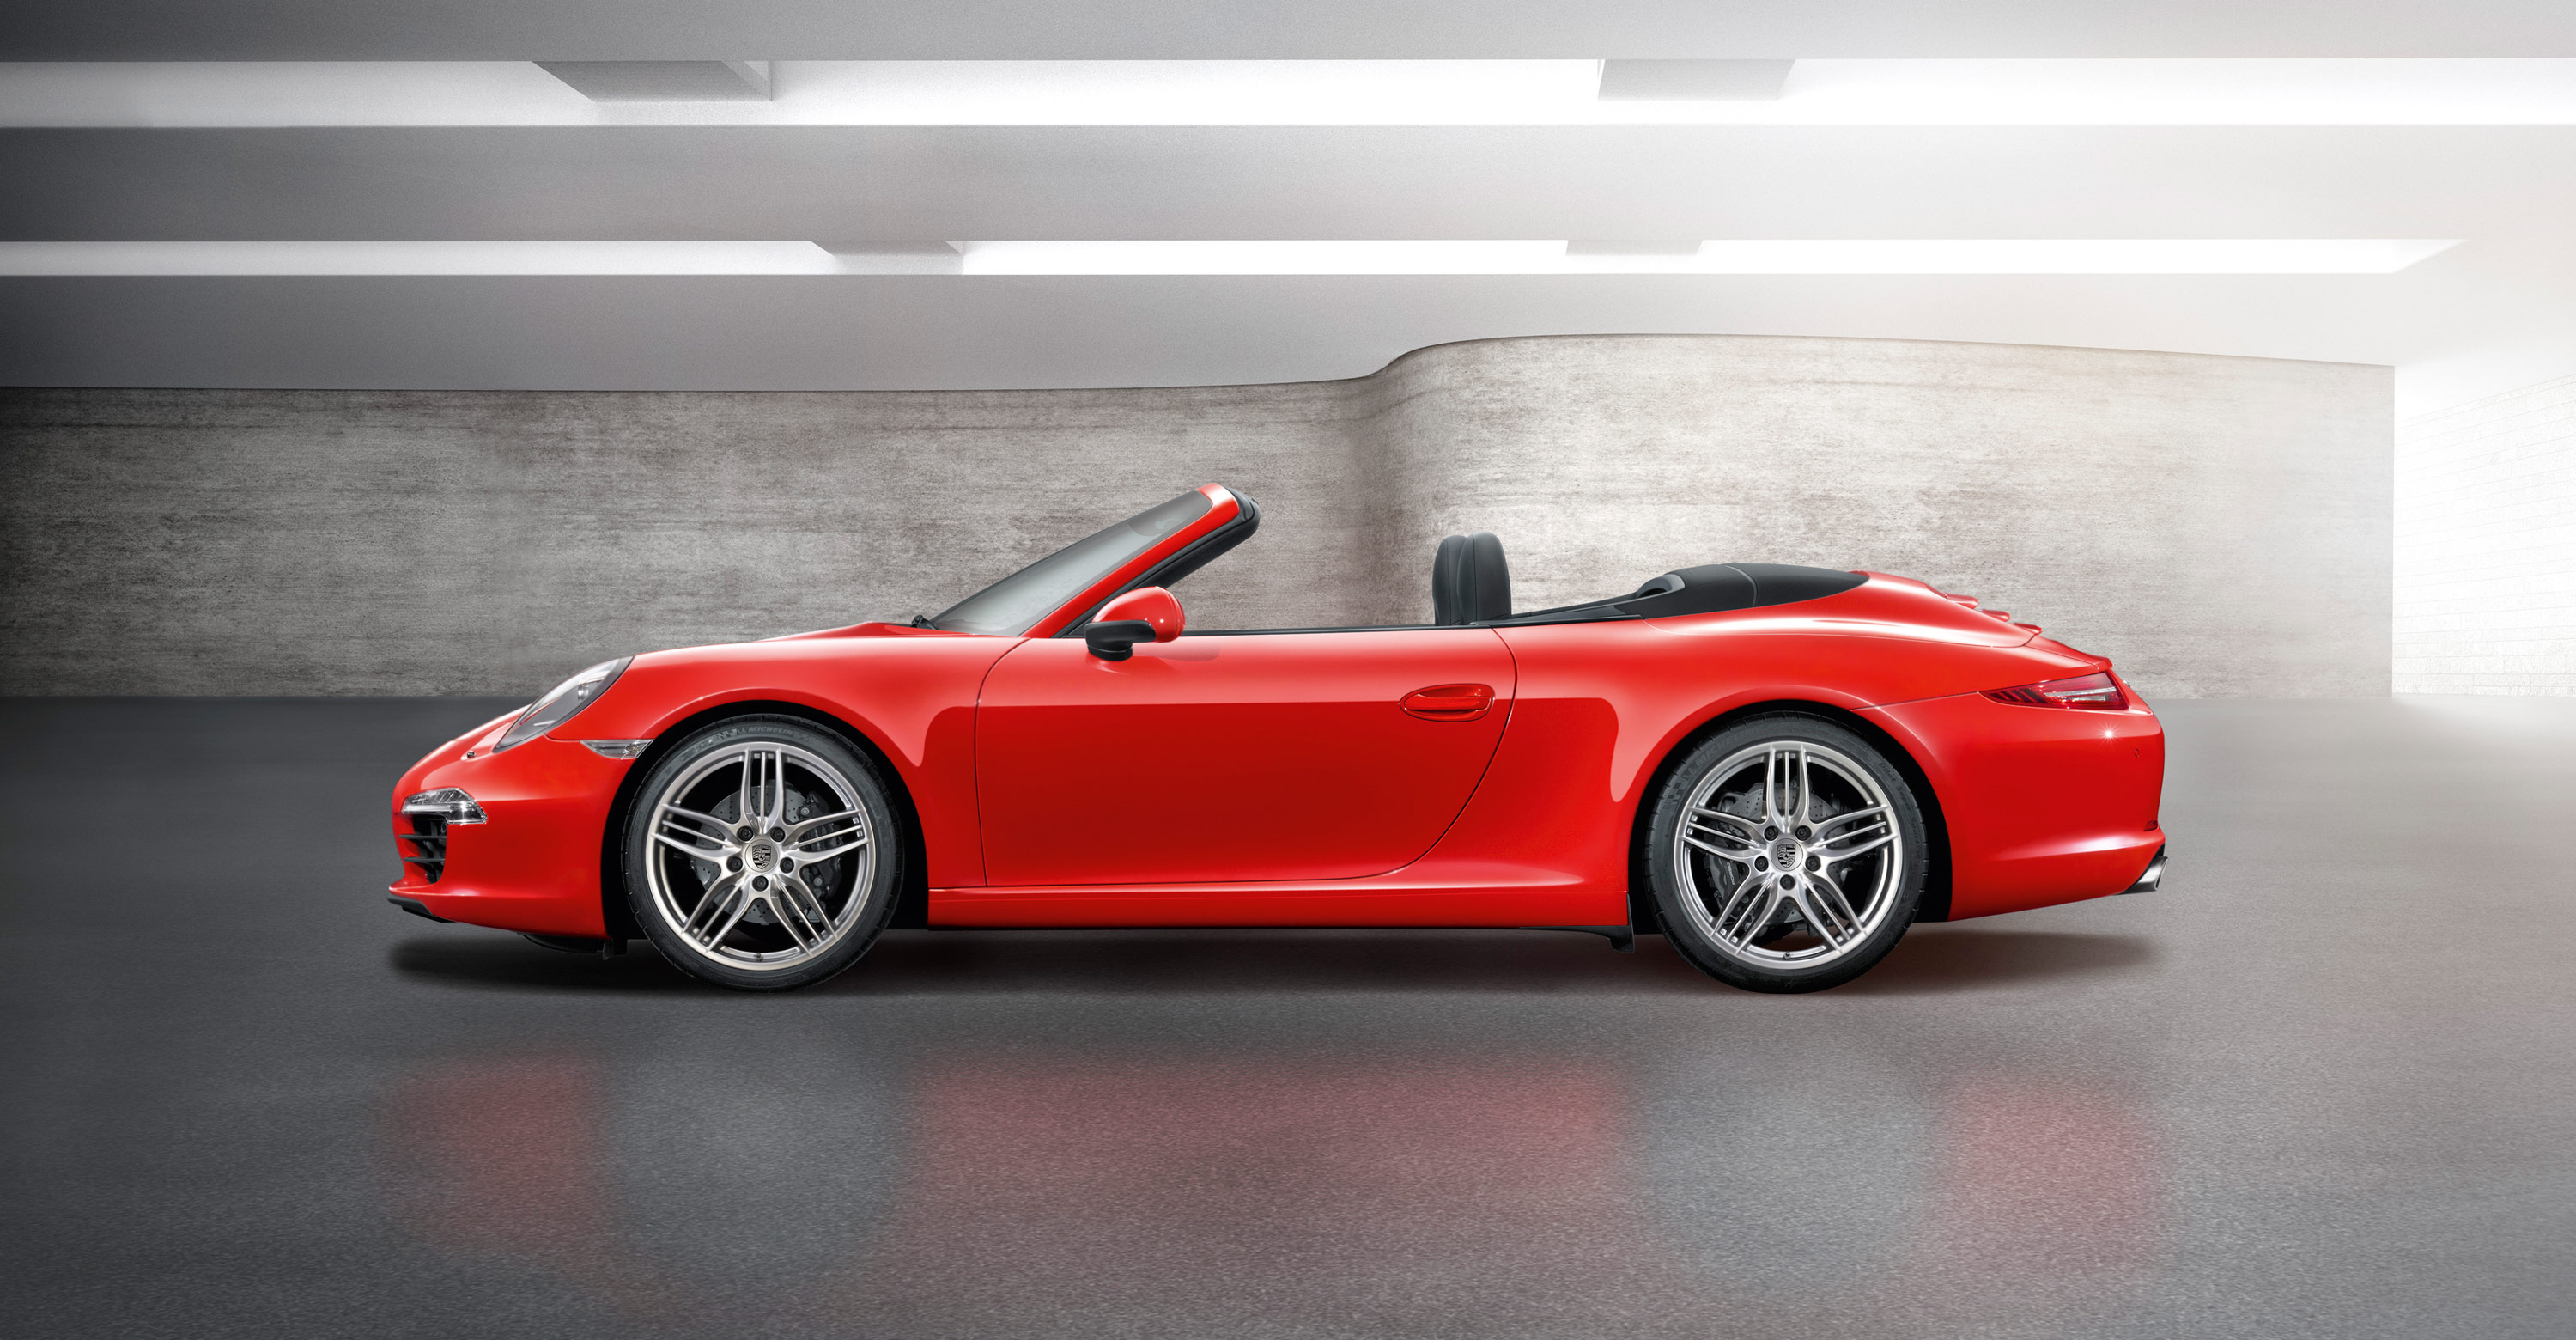 2012 Porsche 911 Carrera Cabriolet - Side view